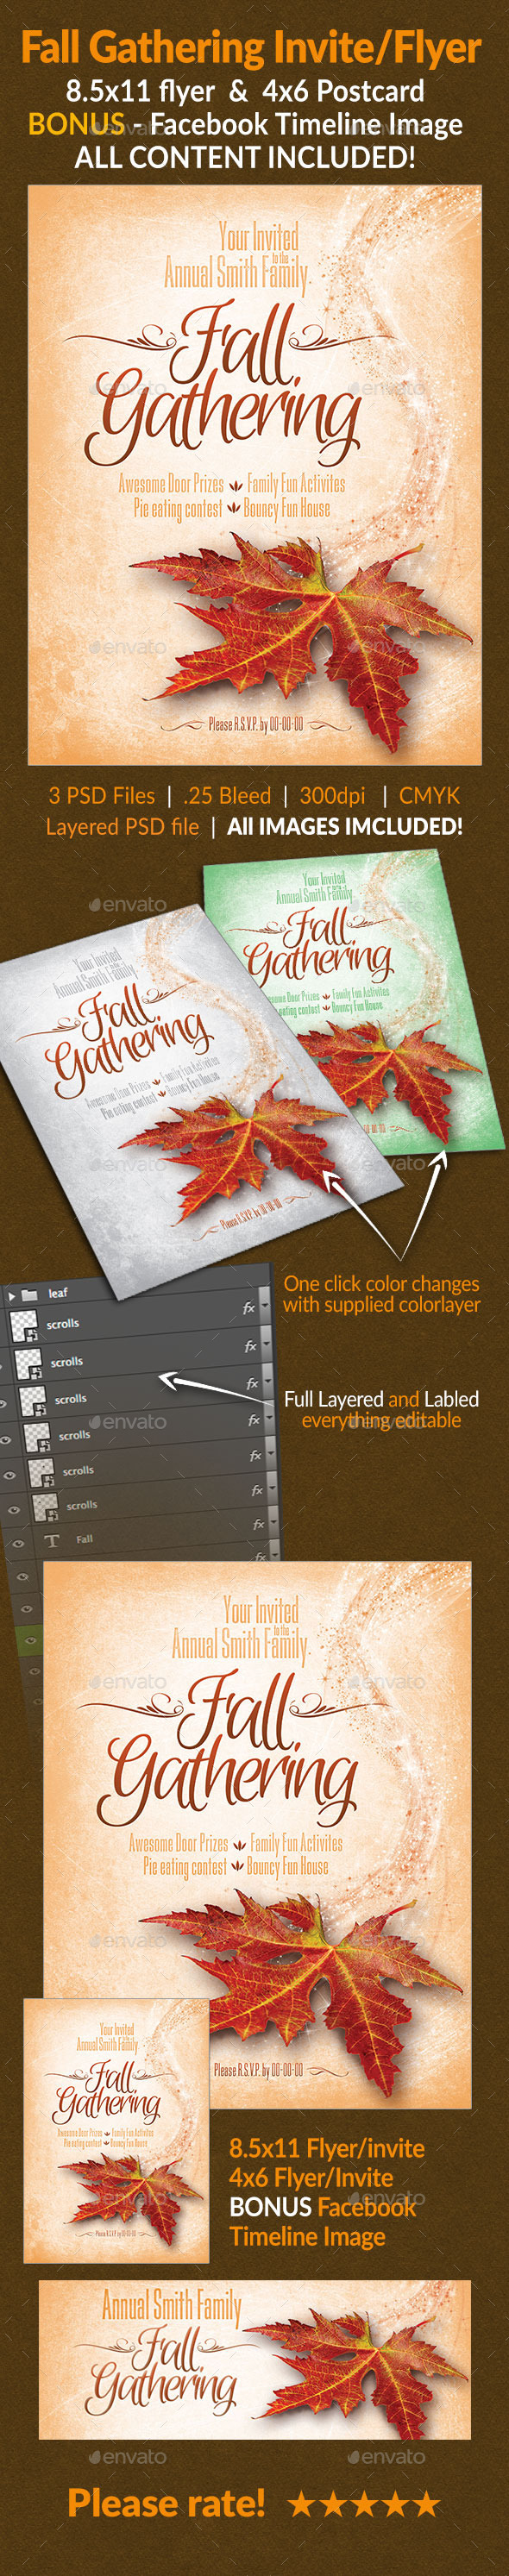 Fall Gathering Invite/Flyer Set - Holidays Events